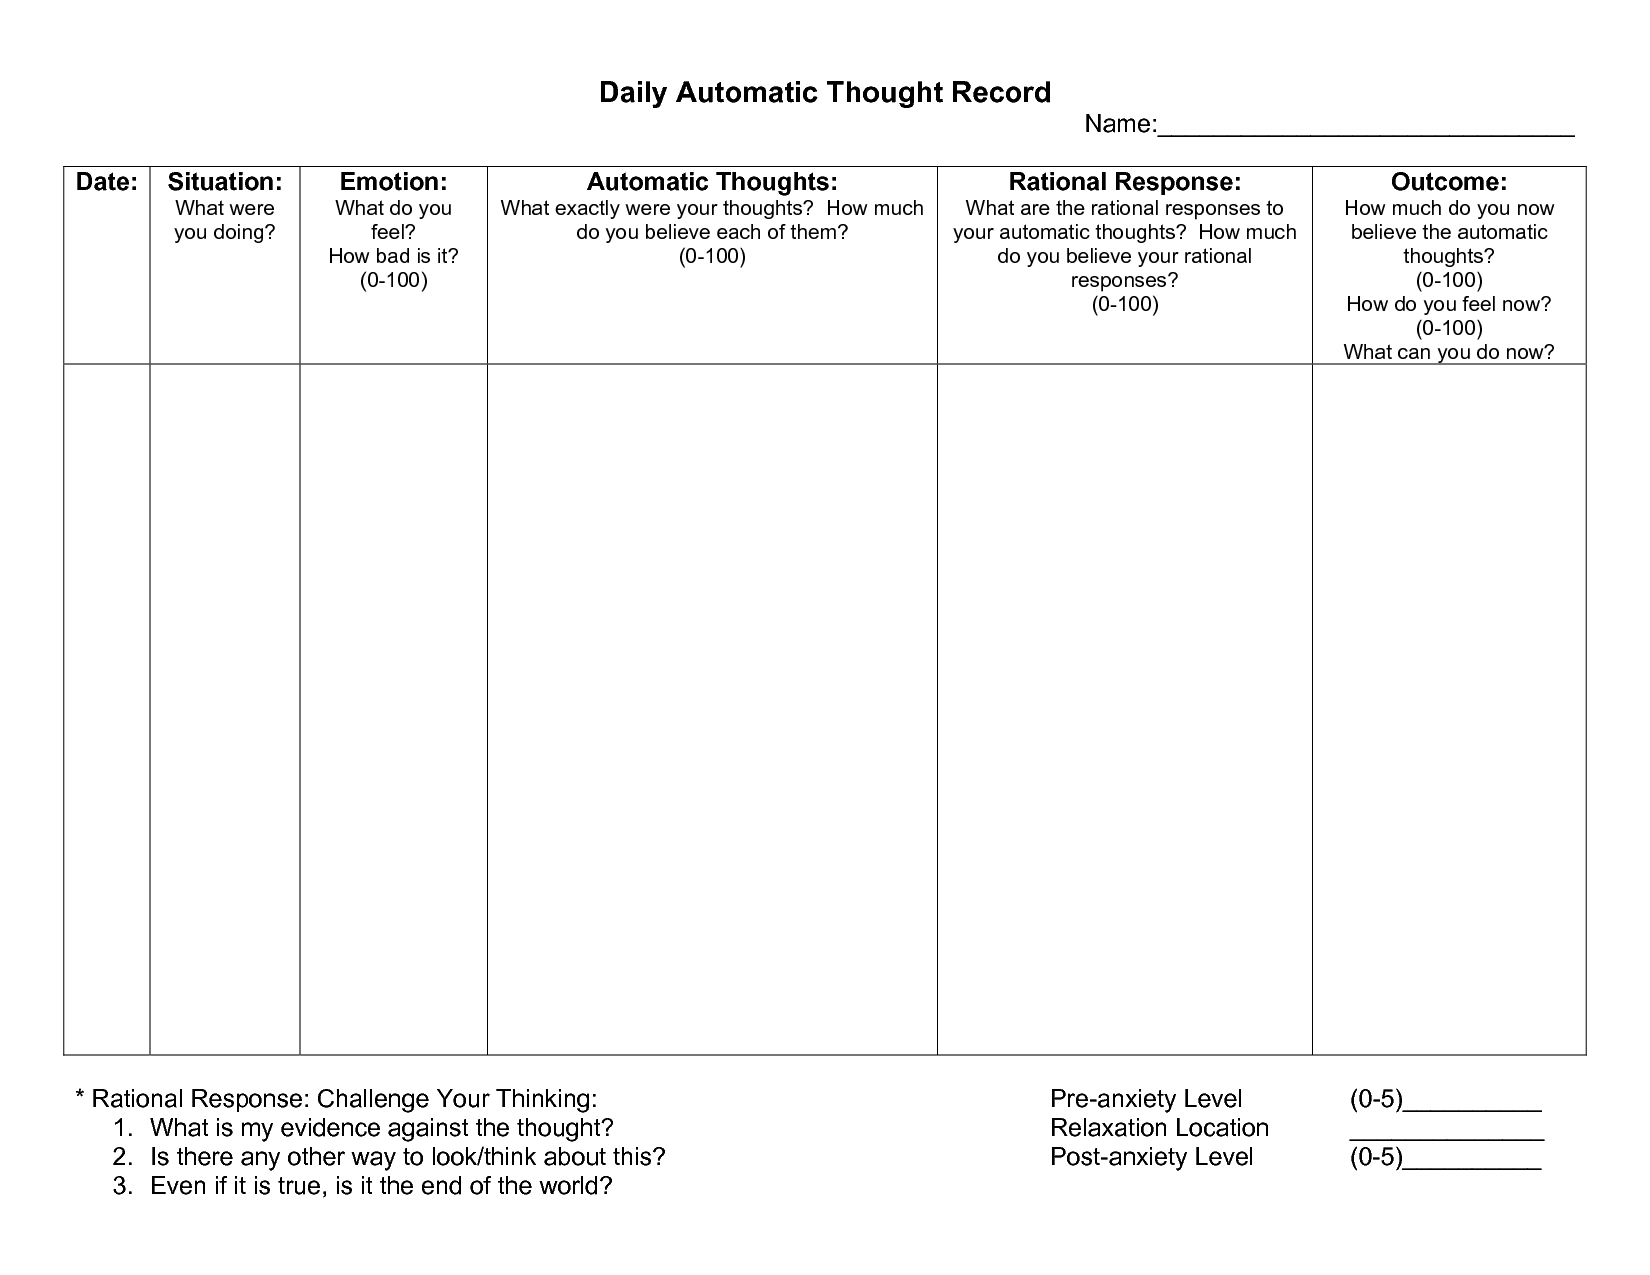 Worksheet Rebt Worksheet Automatic Thought Record Worksheet Within Cbt Worksheets For Anxiety And Depression